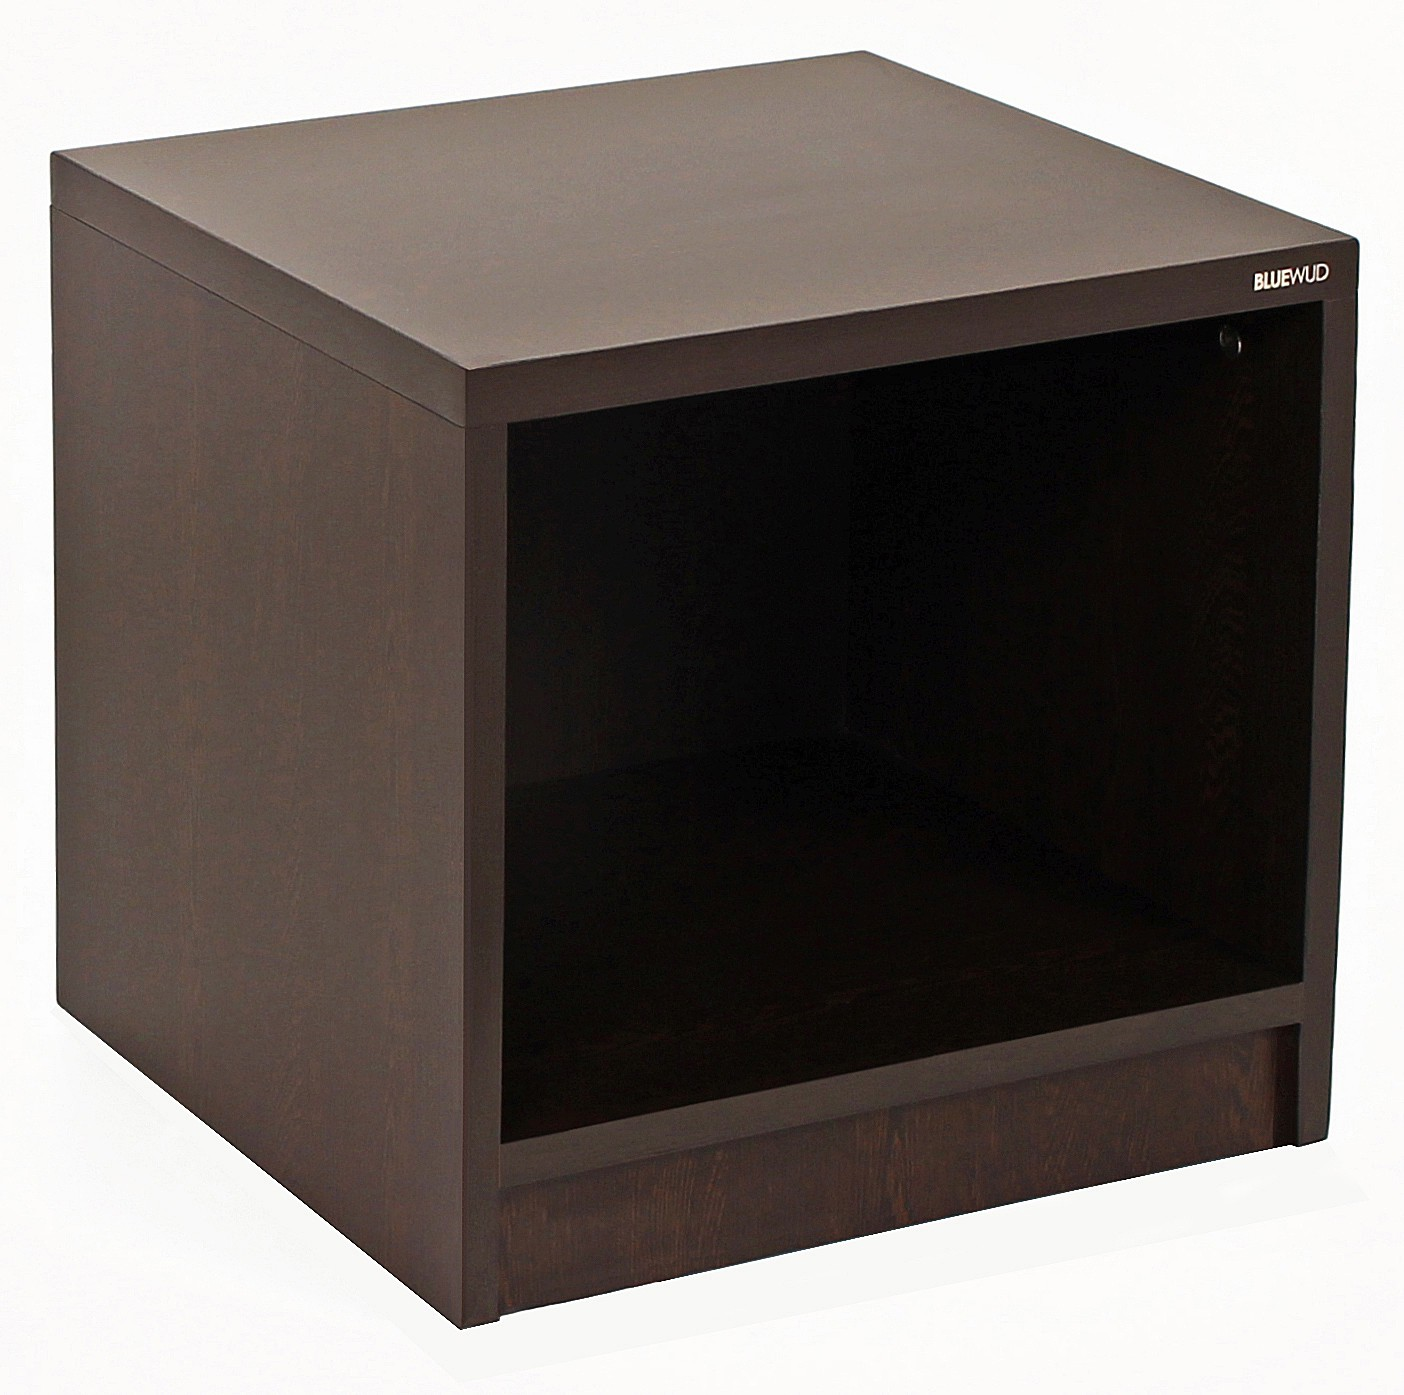 View Bluewud Oliver Engineered Wood Bedside Table(Finish Color - Wenge) Furniture (Bluewud)